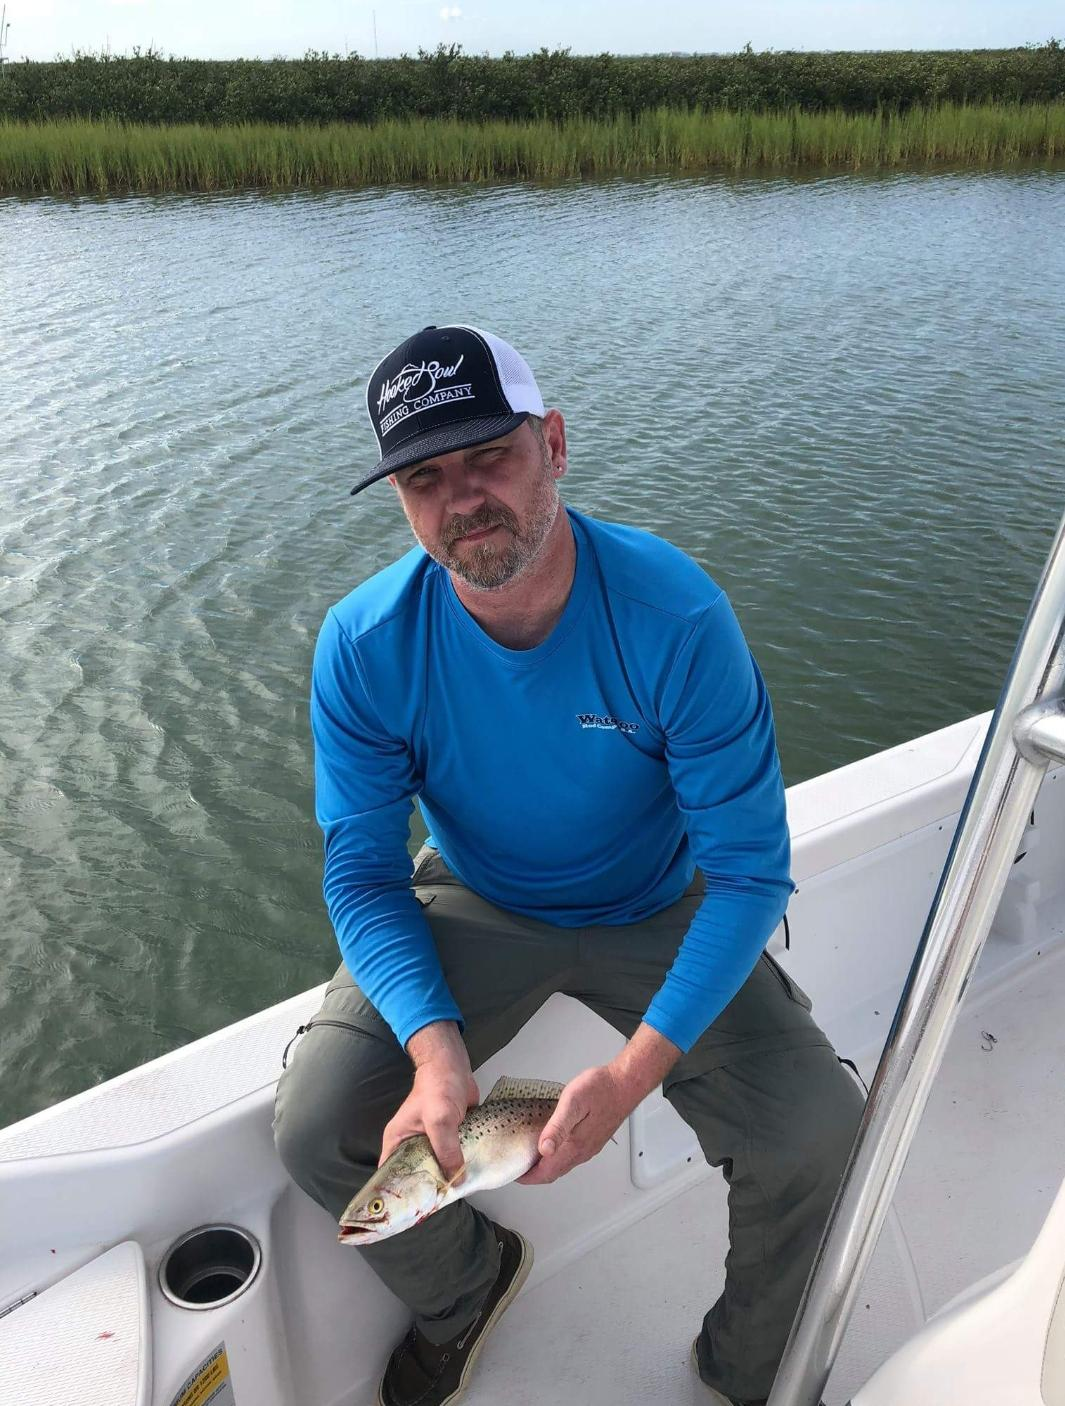 navy white tournament fishing hat